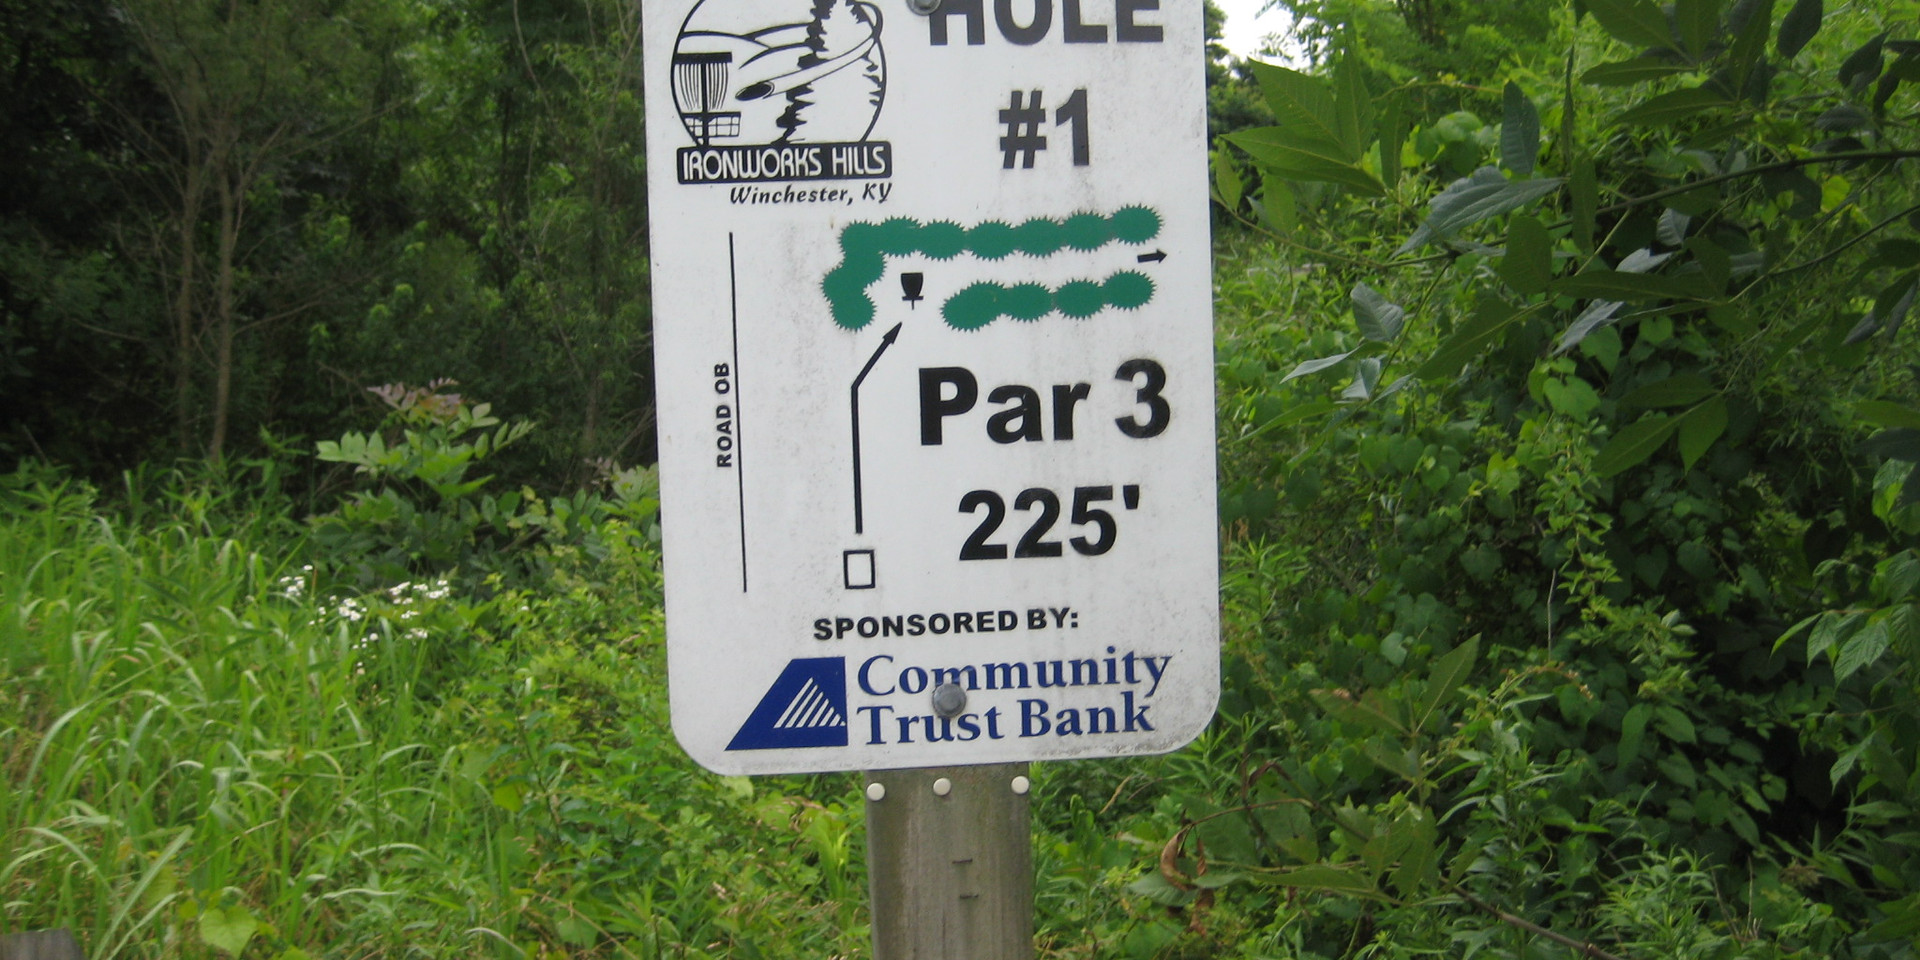 Disc Golf Course Hole 1 Sign.JPG